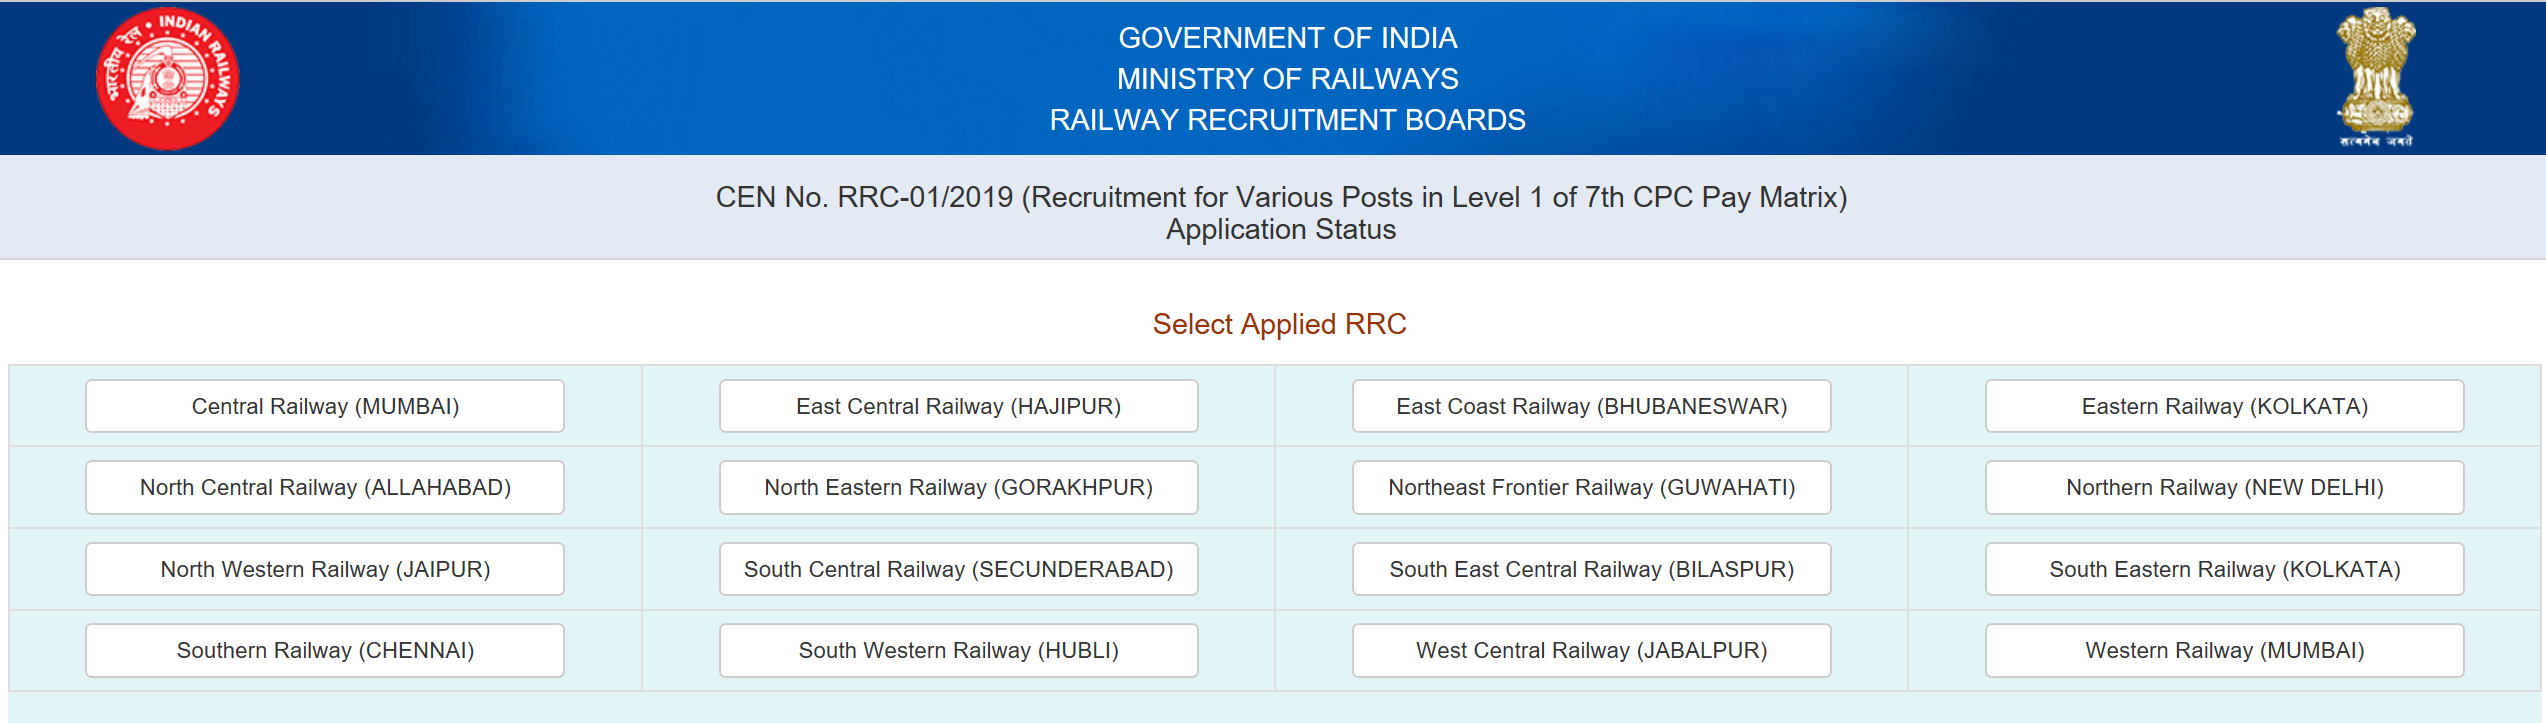 RRB Group D 2019 - Application Status